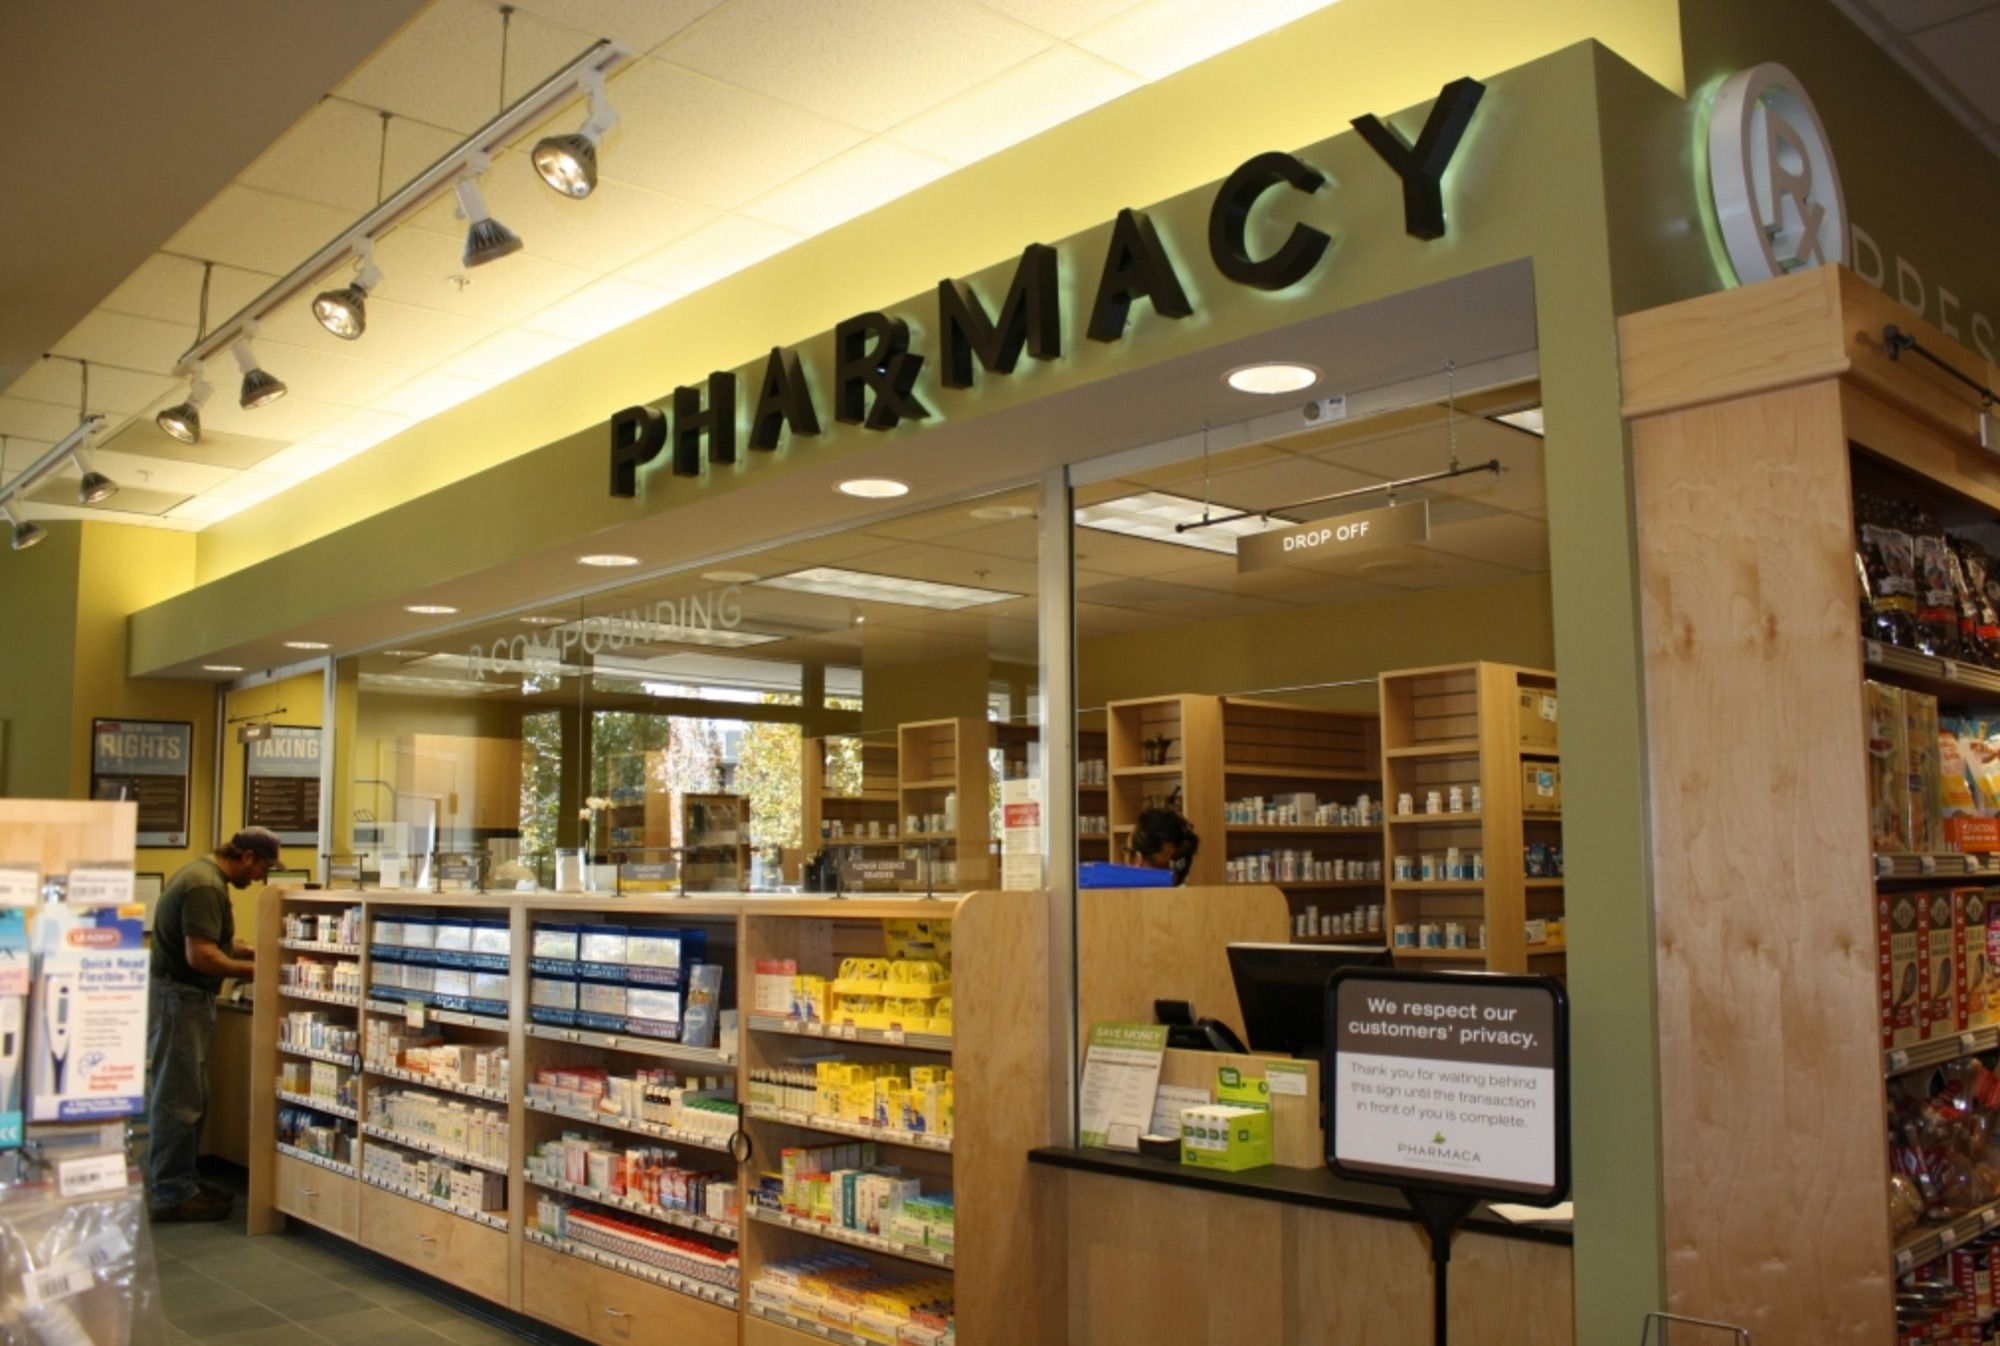 Pharmacy Design Ideas pharmacy ideas google search pharmacy ideas pinterest ideas interiors and interior design Pharmacy Design Pharmacies Us